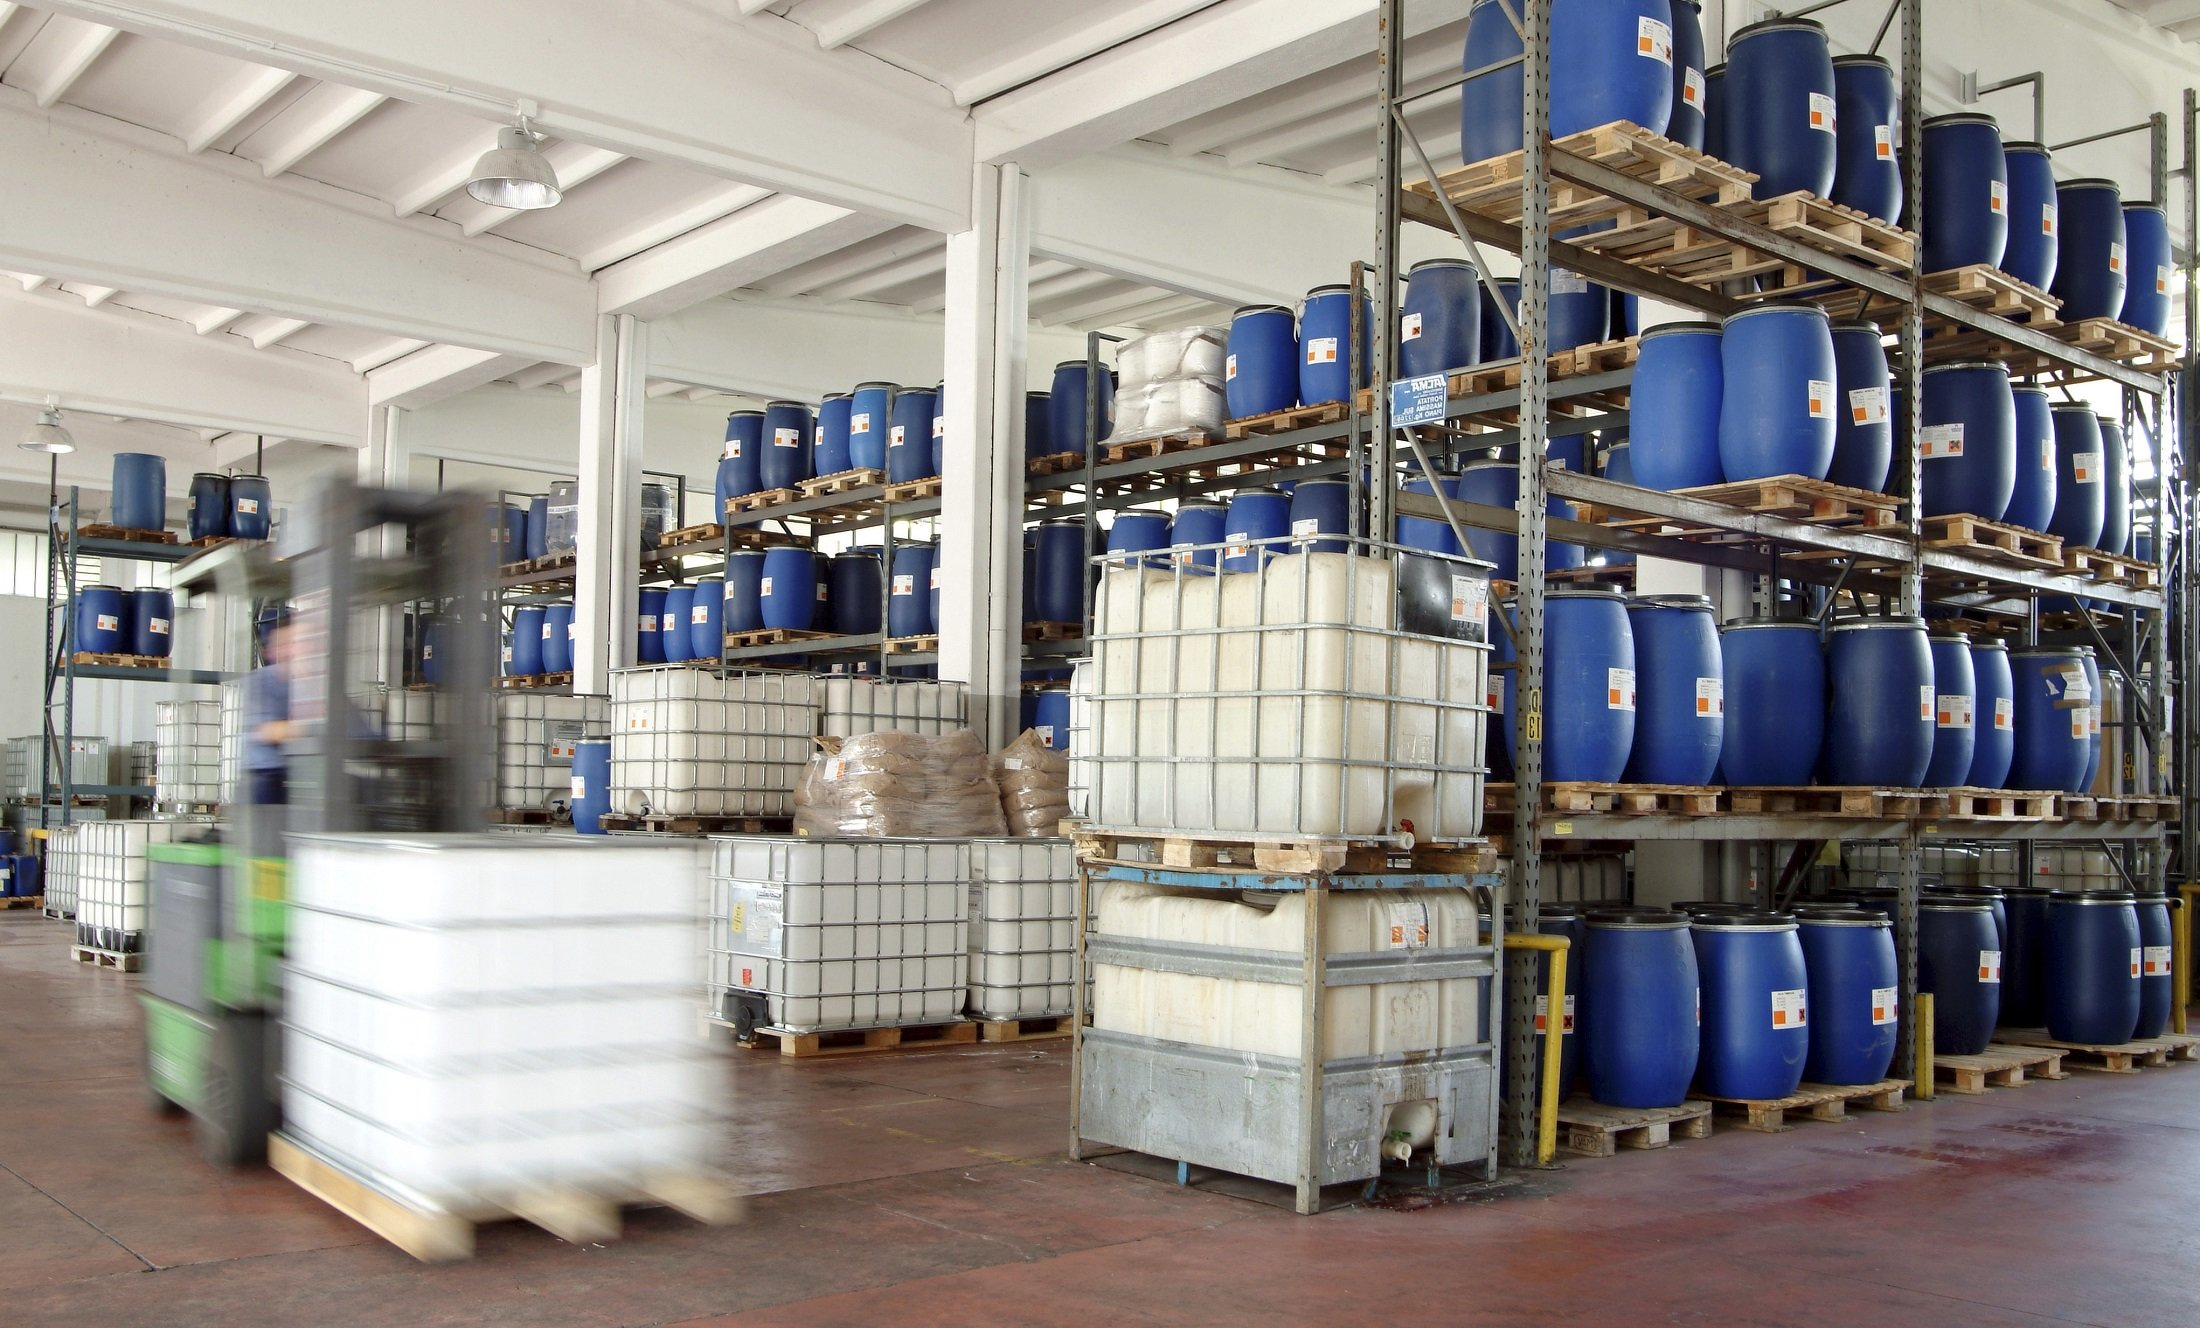 Using prohibited and restricted hazardous chemicals at your workplace